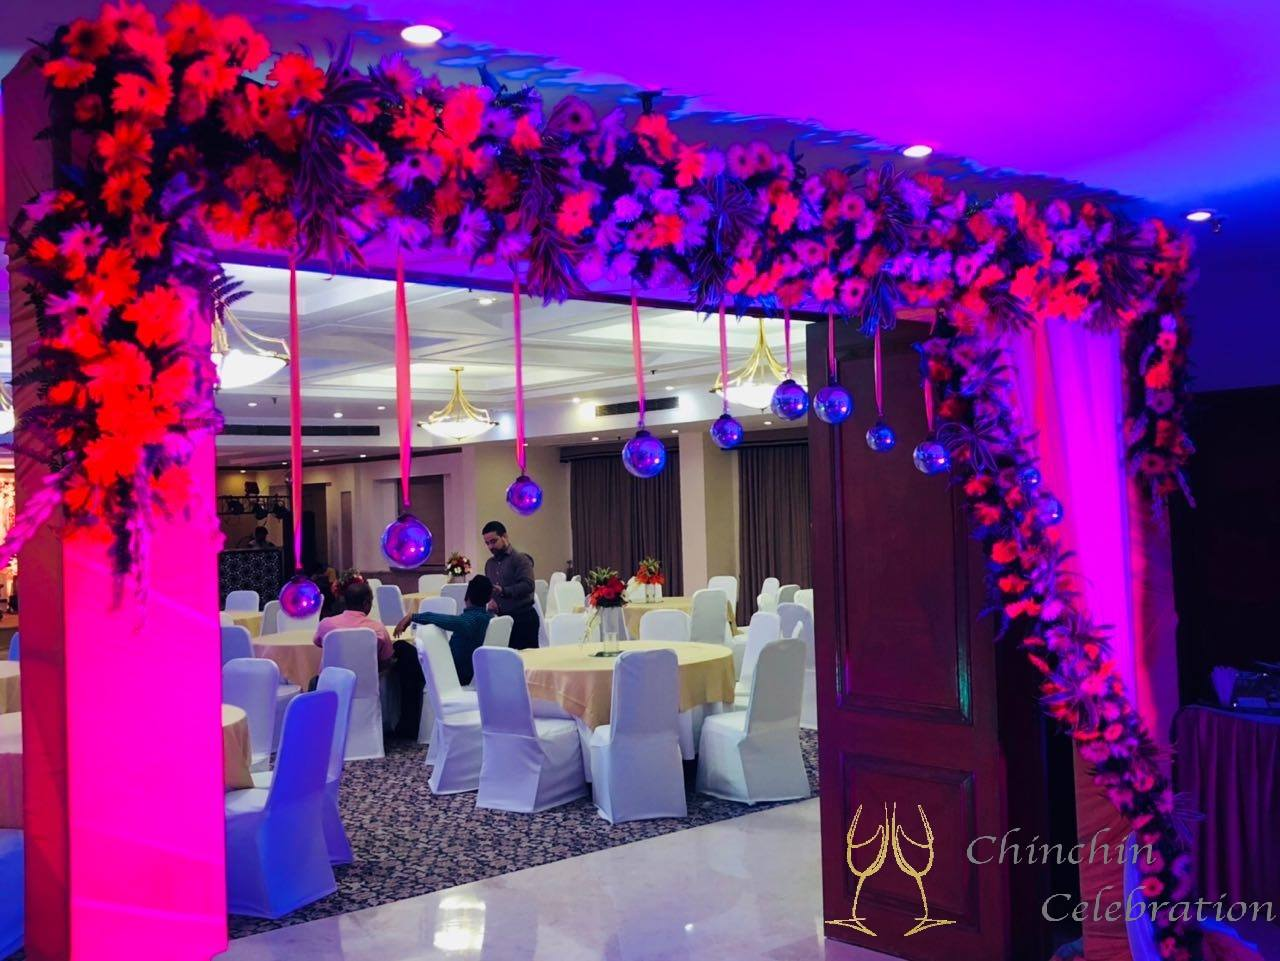 event planning, event management , event decoration, birthday party planner , event management company